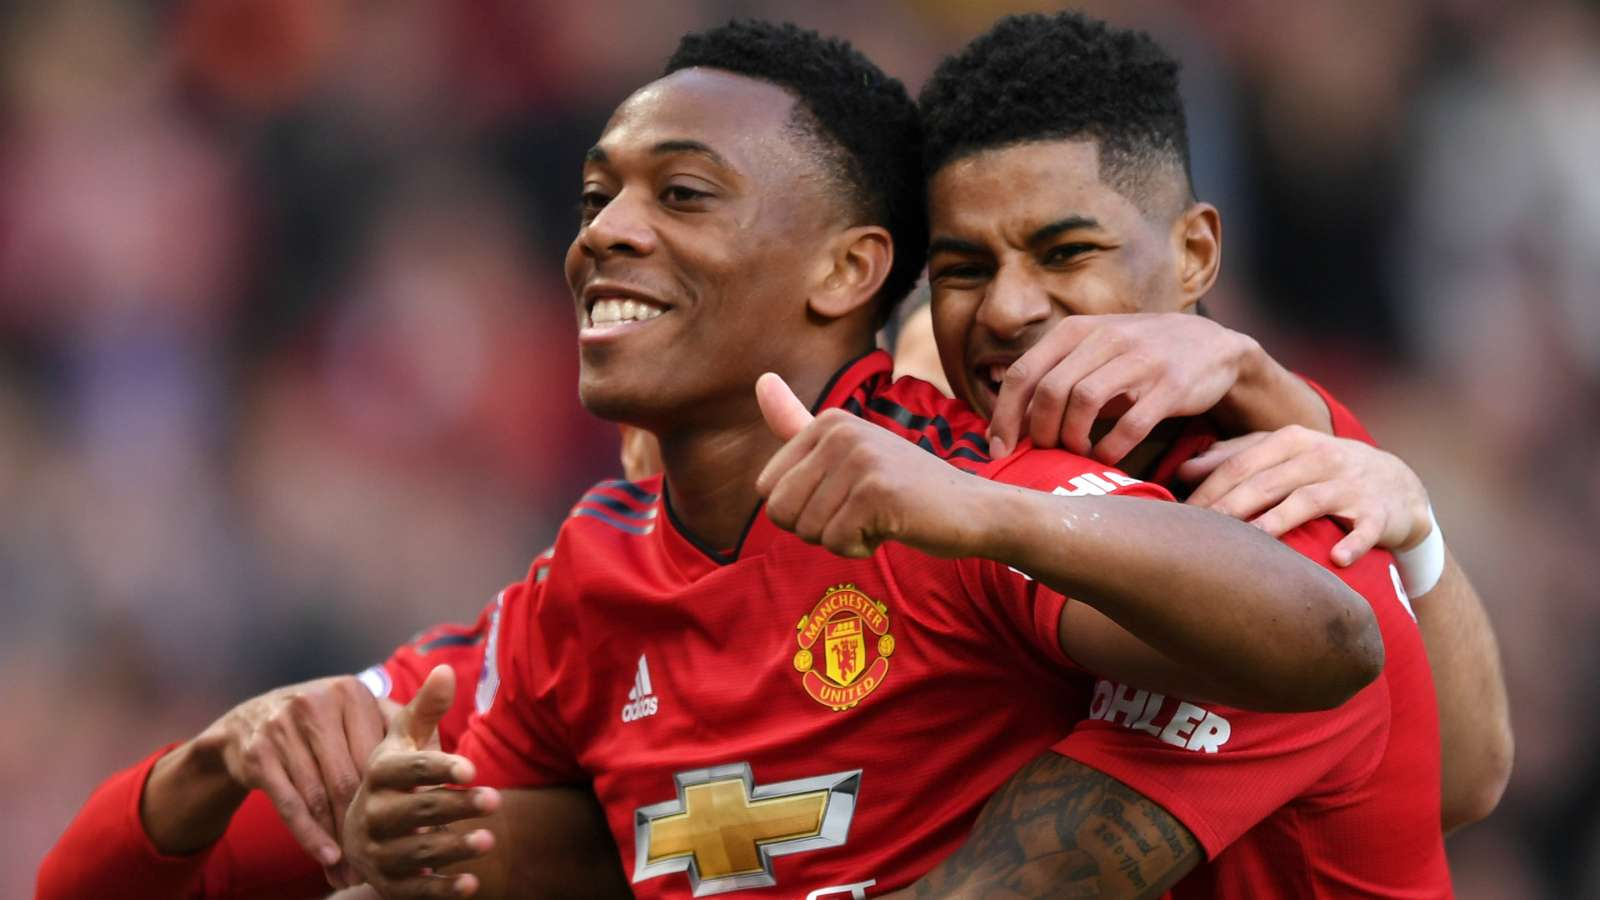 anthony martial cropped n8a2iim8hlc7175jgujj24iun - Solskjaer hopeful that Martial will be available to face Wolves on Tuesday